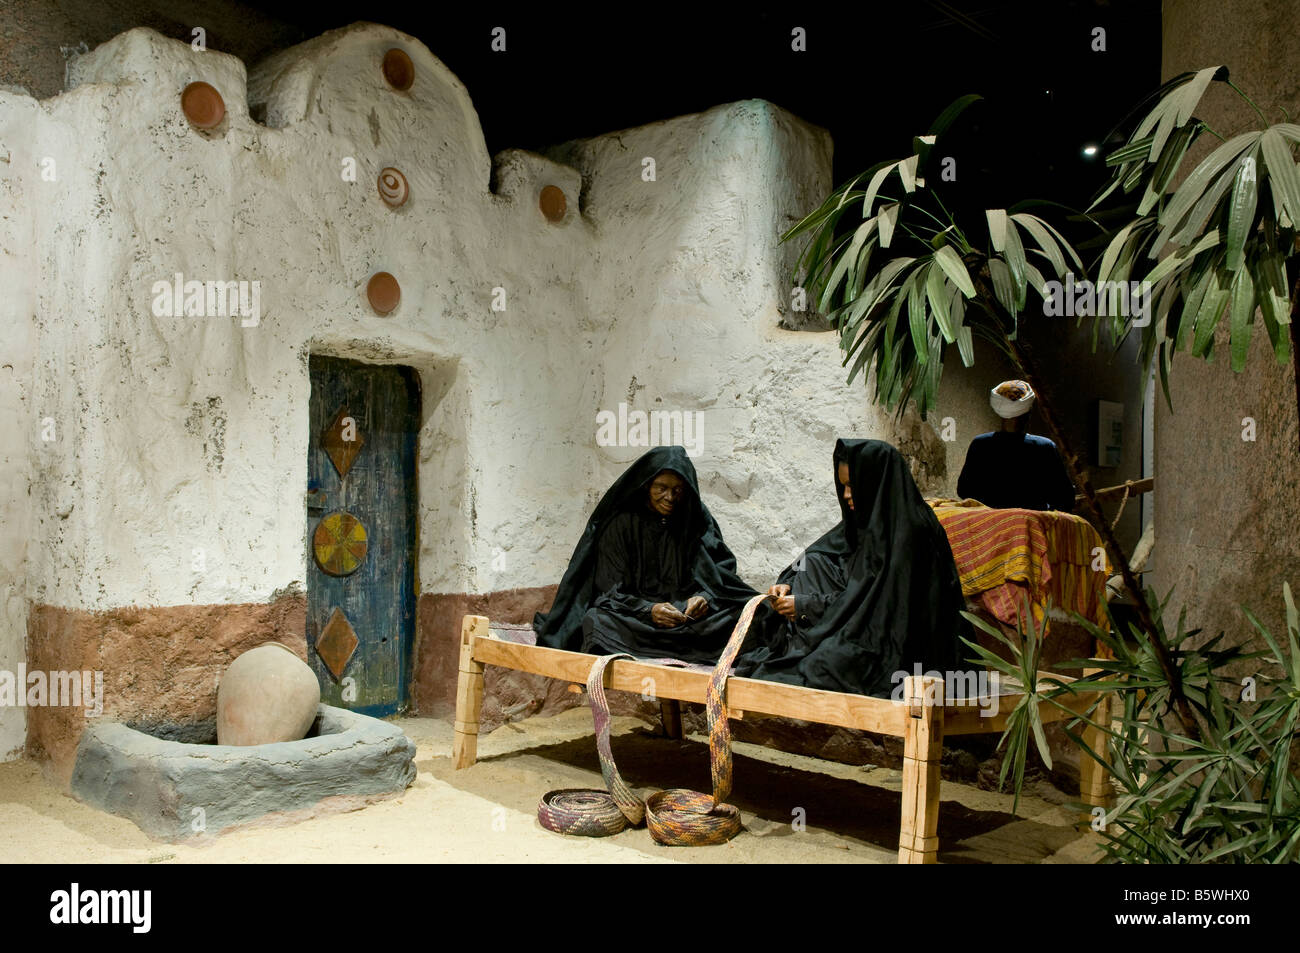 Puppets depicting native Nubian women displayed at the Nubian ethnography exhibition inside the Nubian Museum in - Stock Image